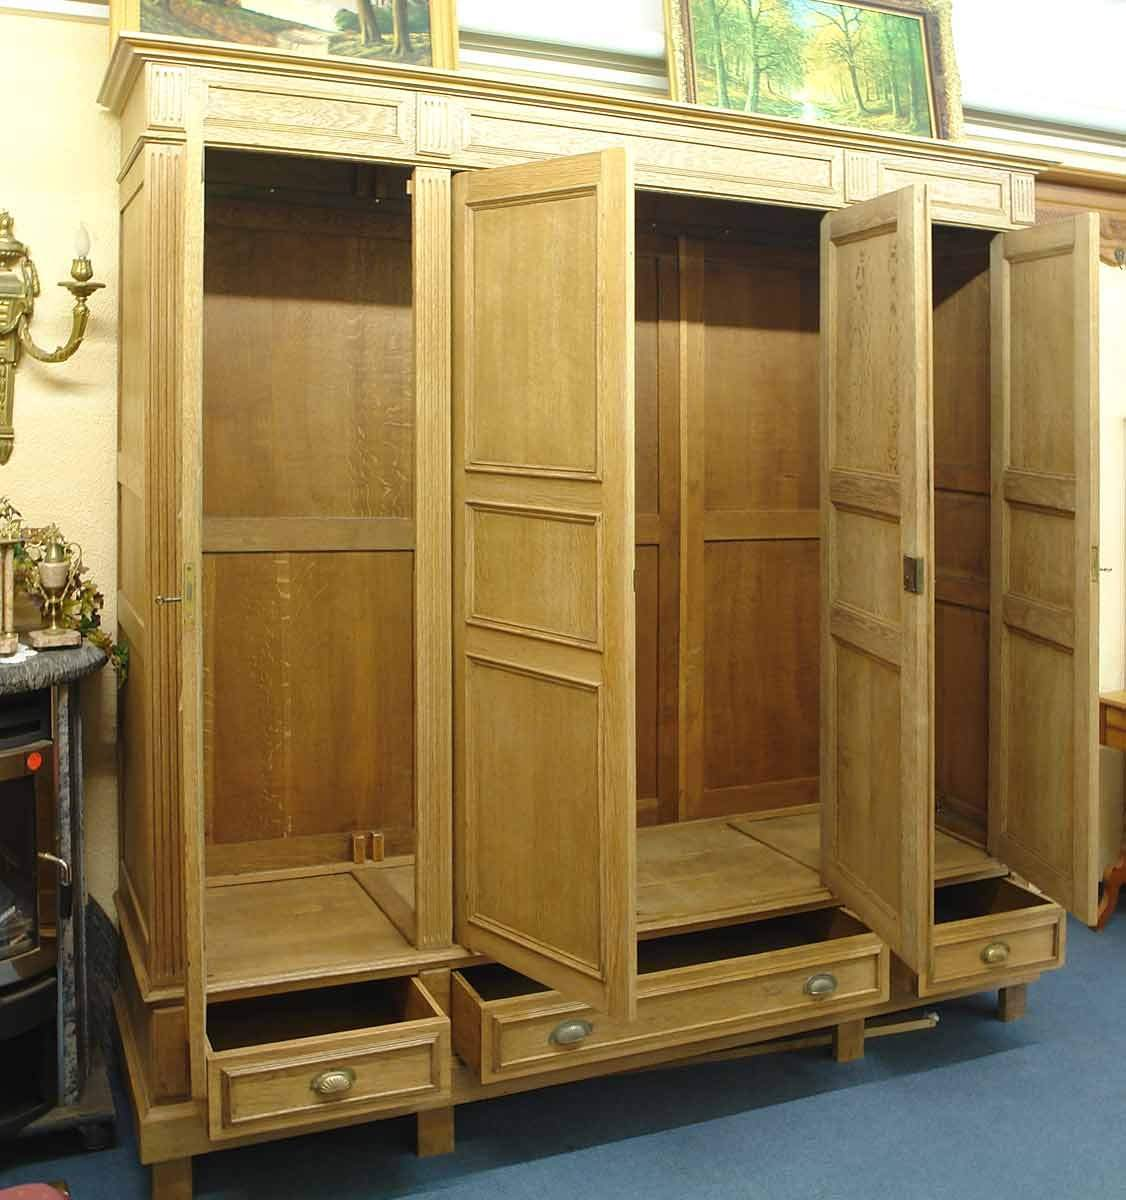 schrank kleiderschrank gr nderzeit um 1880 massiv eiche 1082 ebay. Black Bedroom Furniture Sets. Home Design Ideas